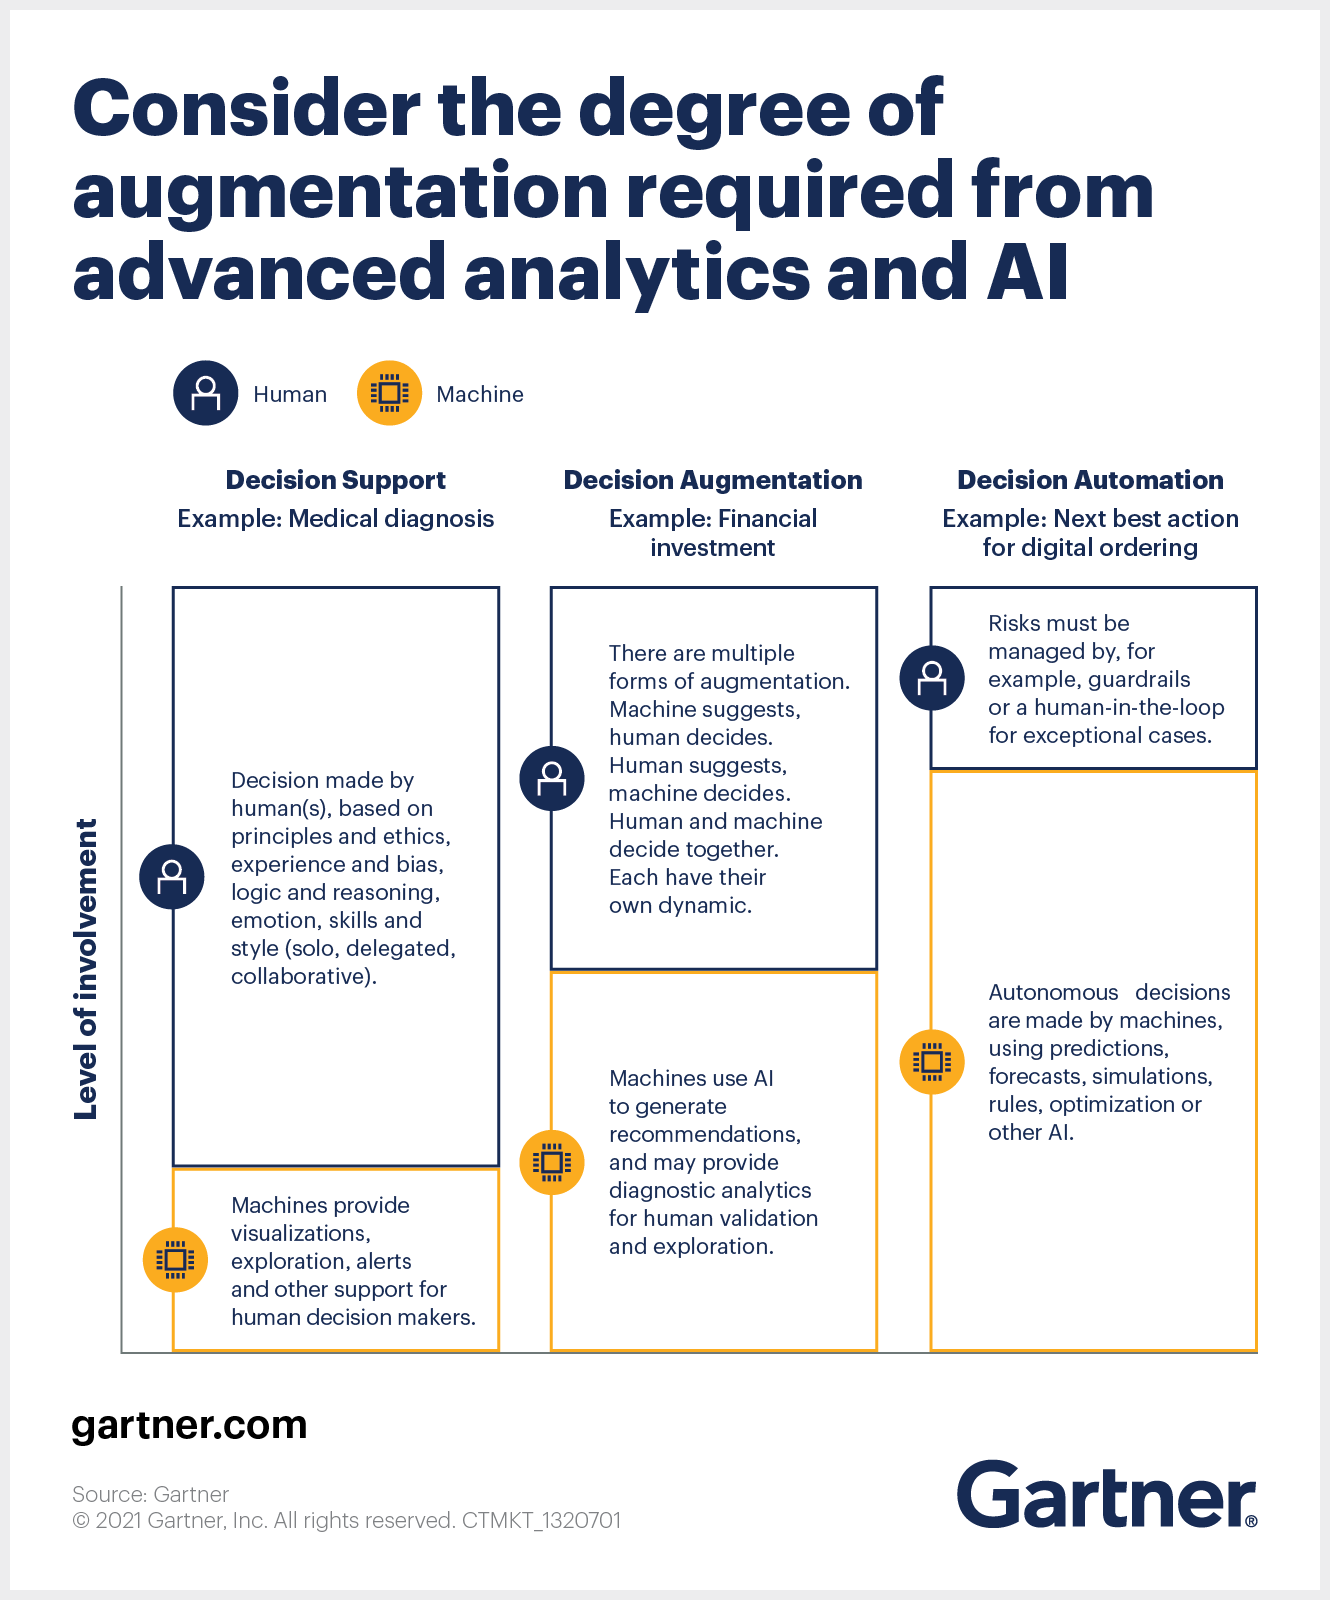 Augmentation Required from Advanced Analytics and Artificial Intelligence (AI)